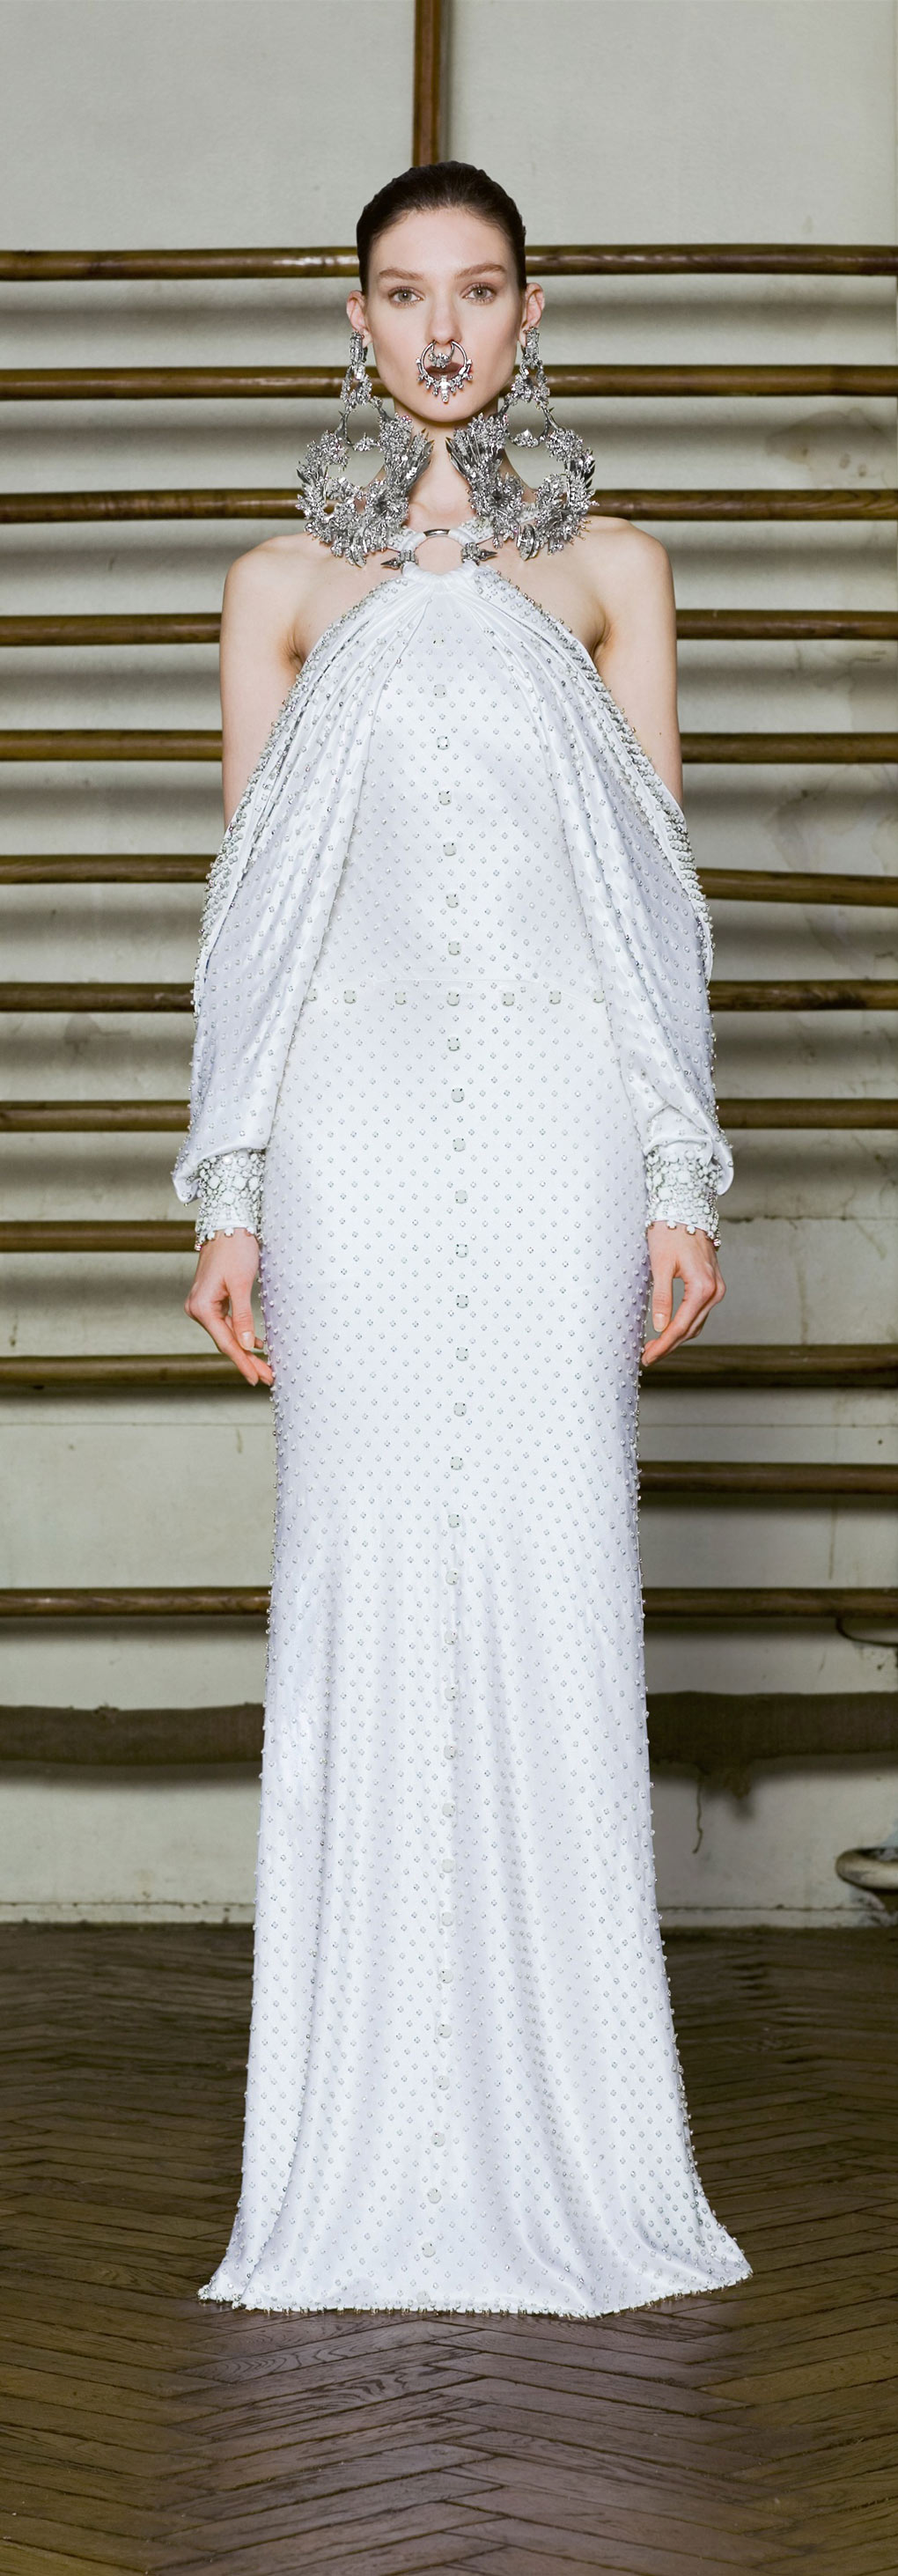 Givenchy Haute Couture spring 2012 Riccardo Tisci